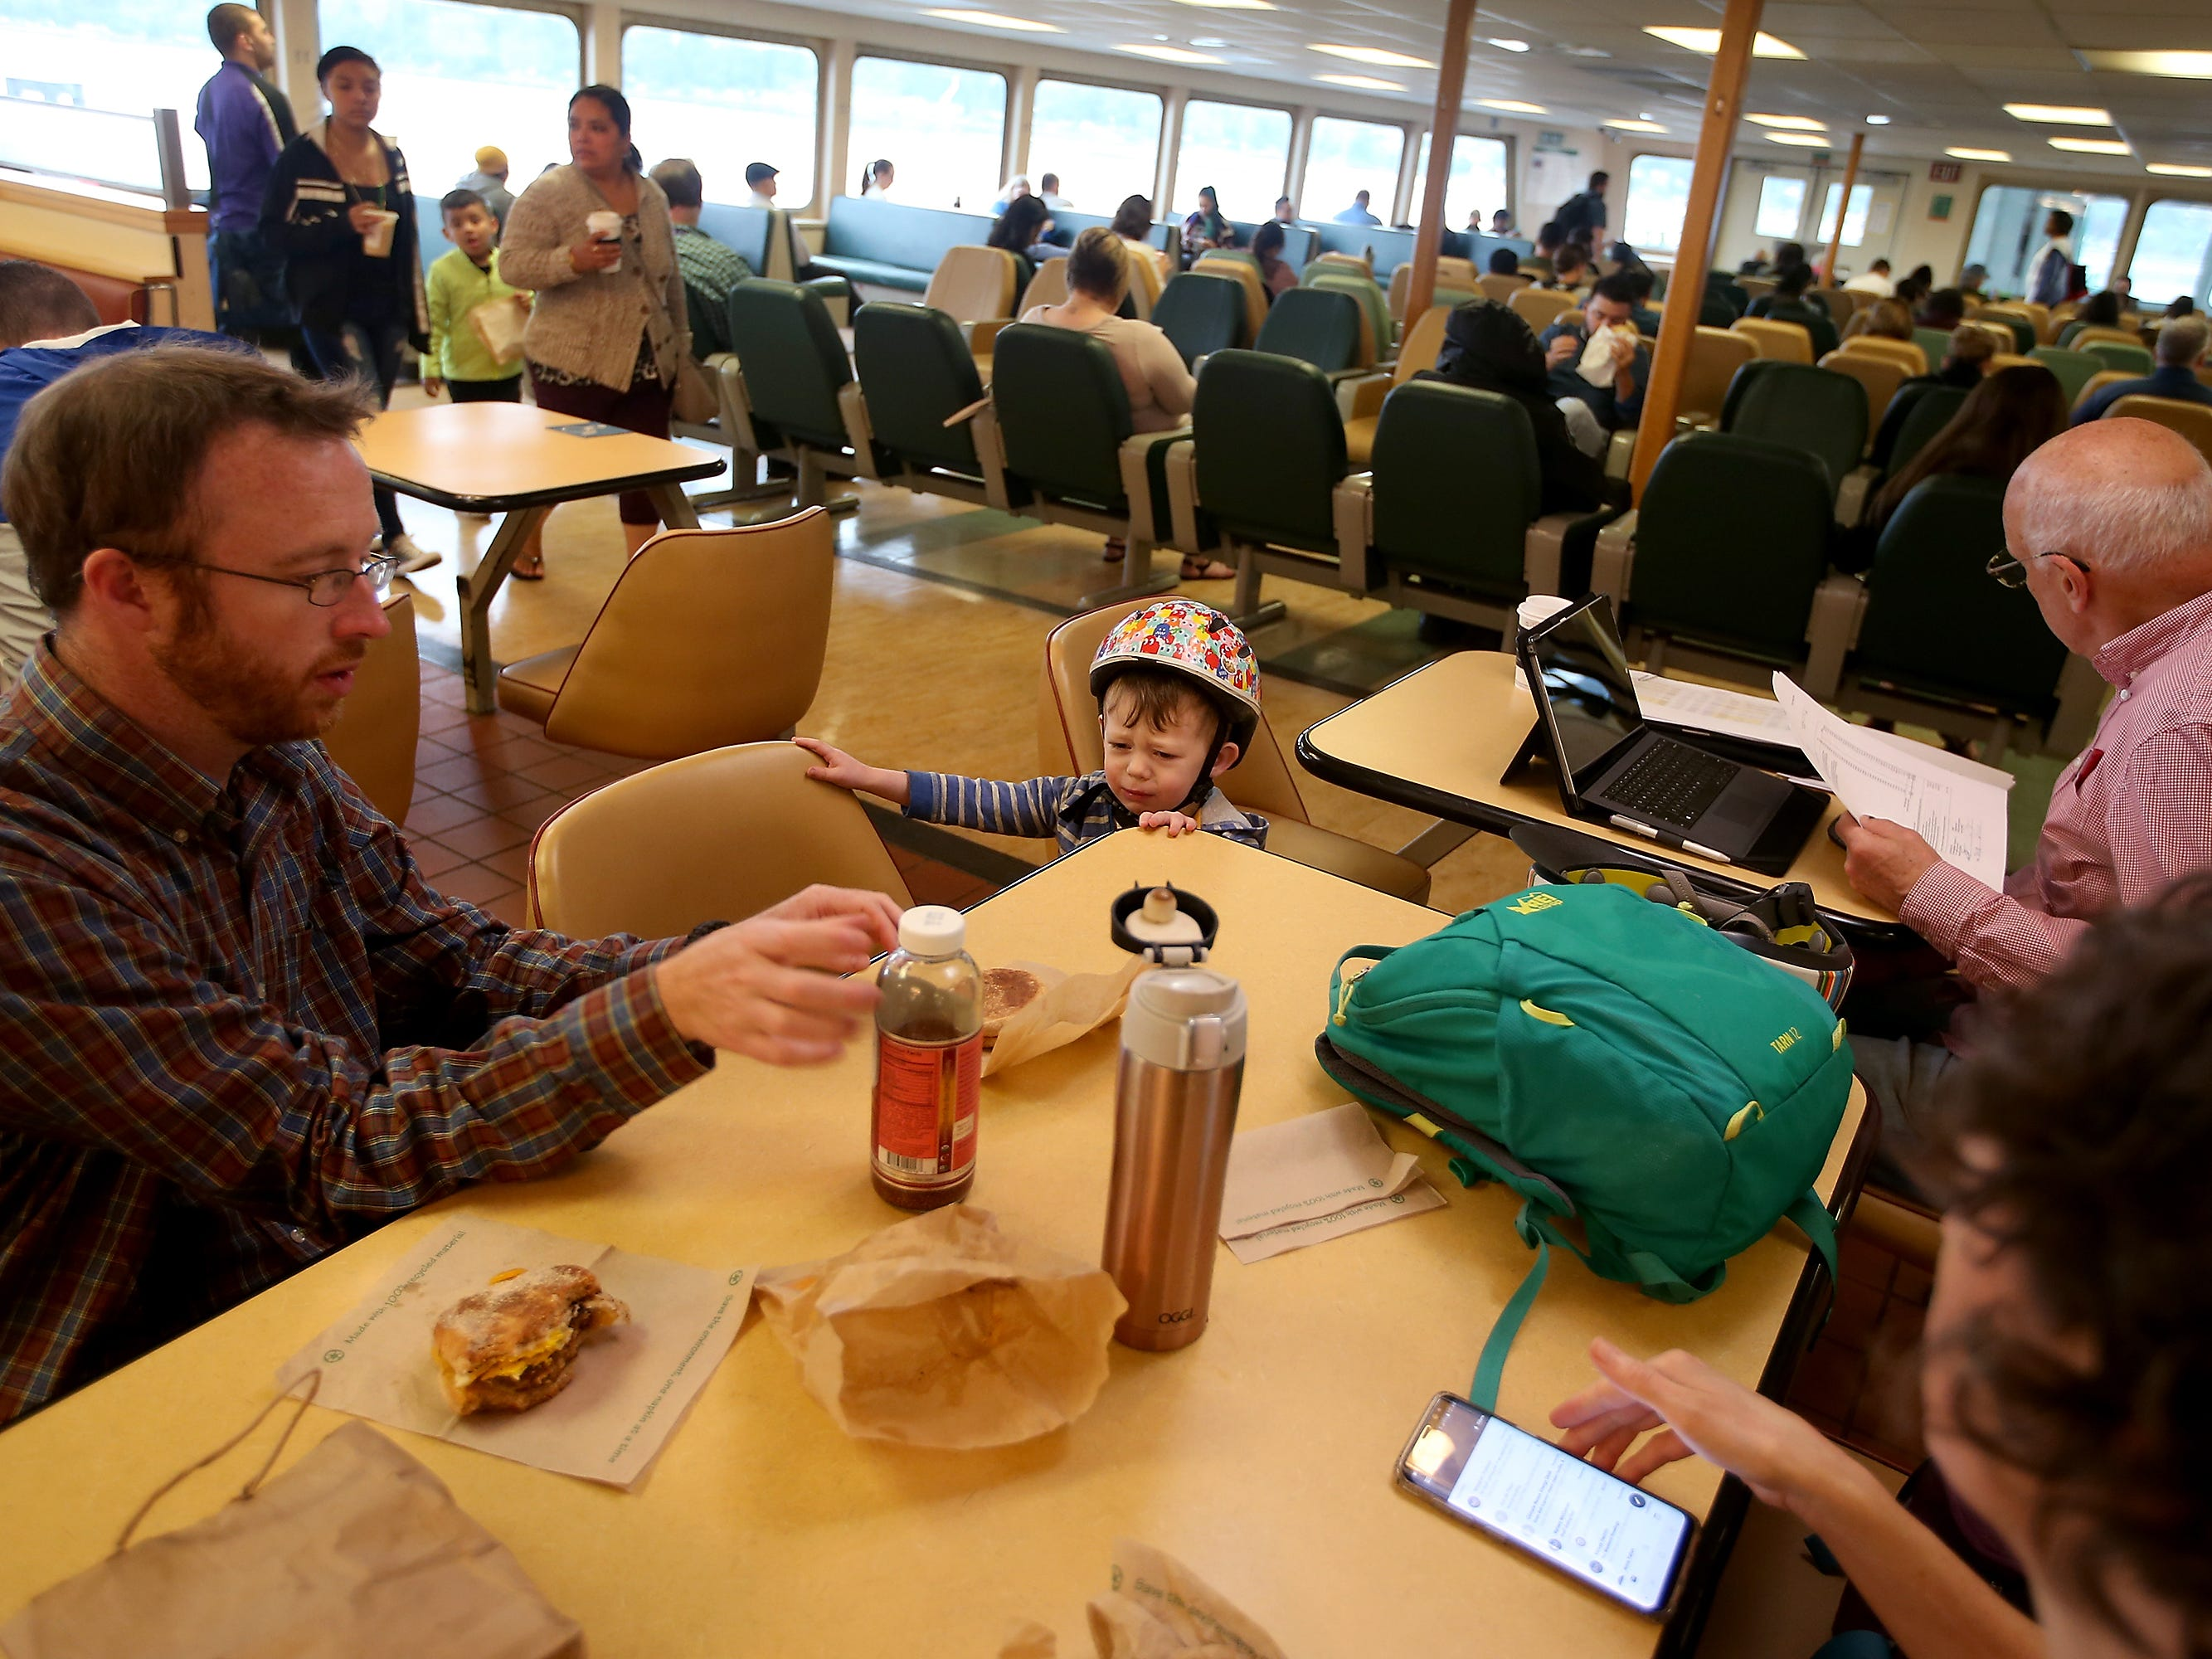 A very tired and slightly cranky Kellas MacPherson, 2, (center) reluctantly takes his seat as his father Gavin (left) and mother Aven Frey (right) get their breakfast sandwiches out, aboard the Washington State Ferry Walla Walla on Thursday, July 19, 2018. The trio commutes to work and daycare in Seattle from Bremerton.